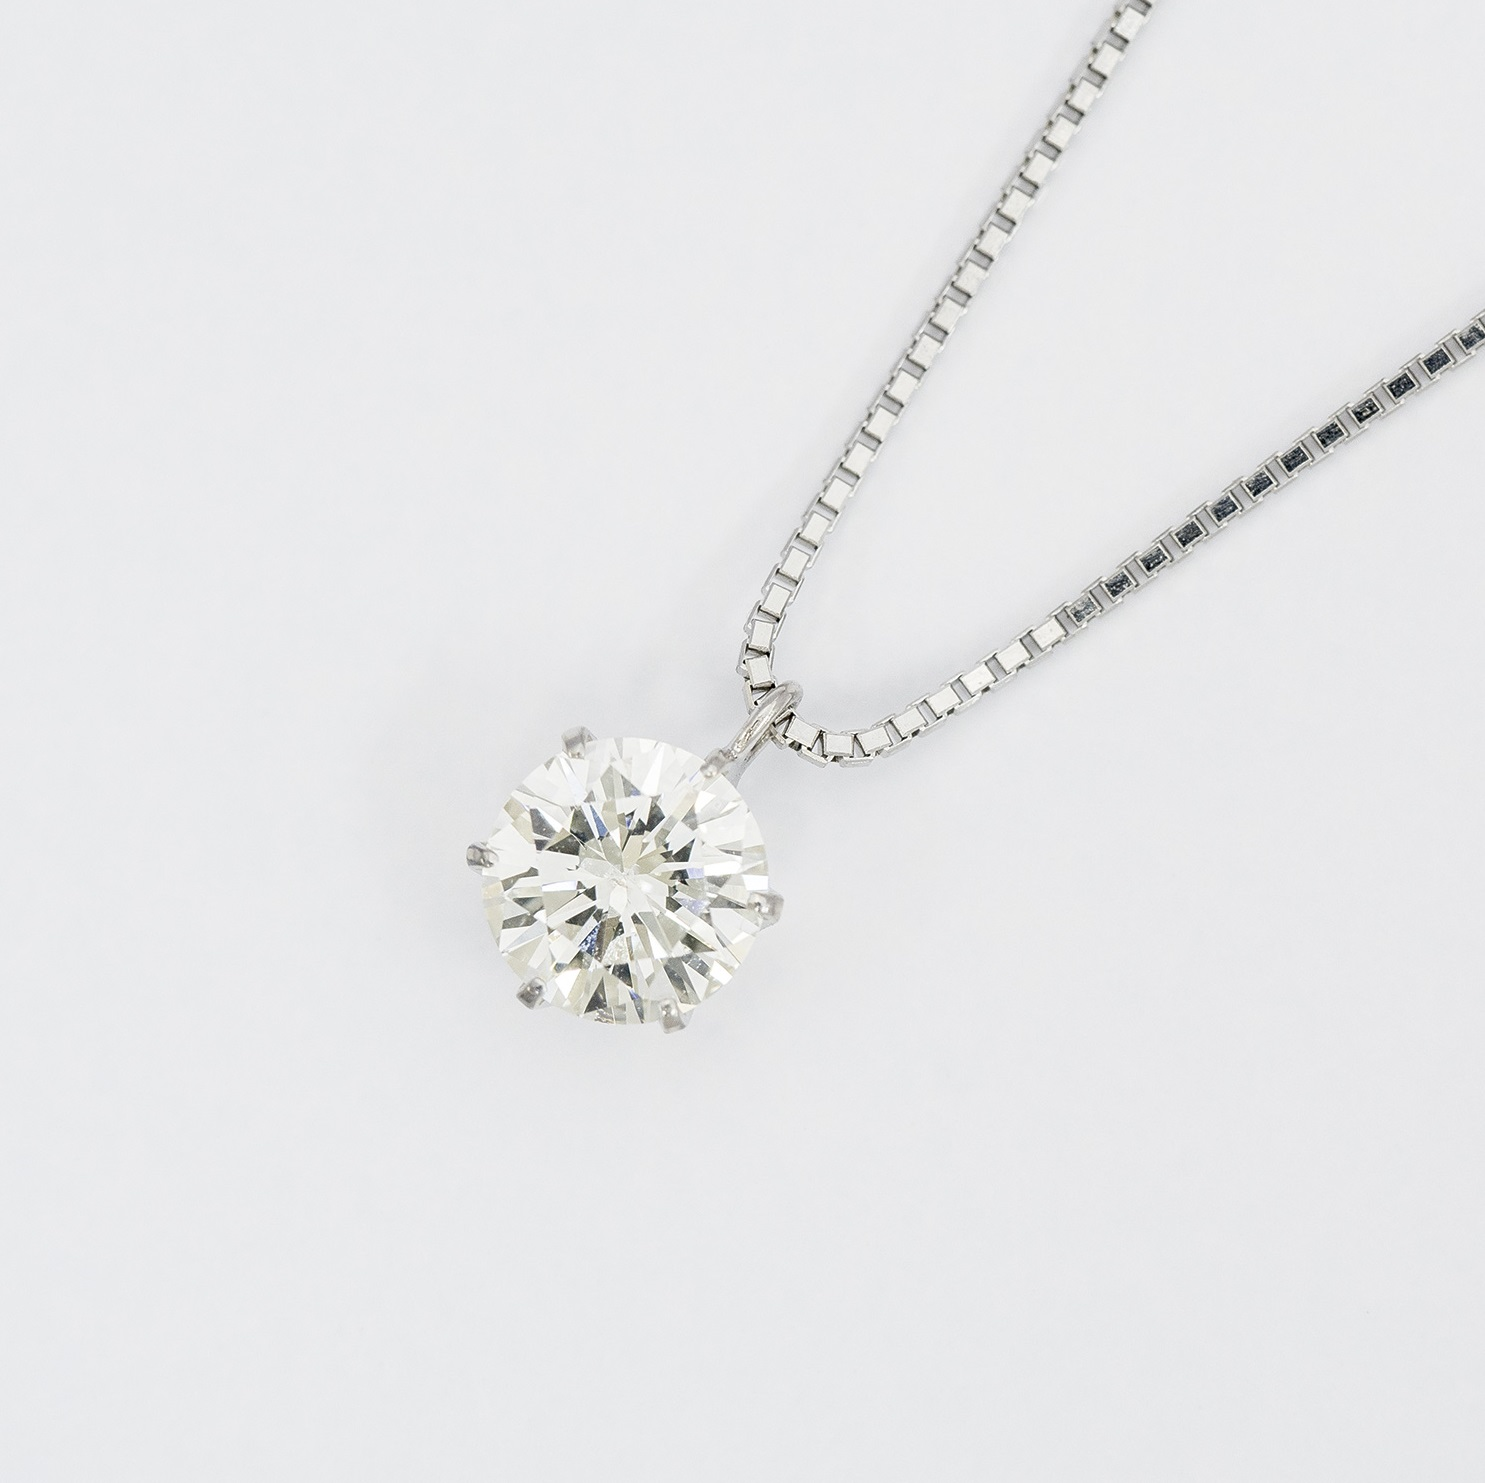 0.2ct Diamond Necklace ISNT6-4.0